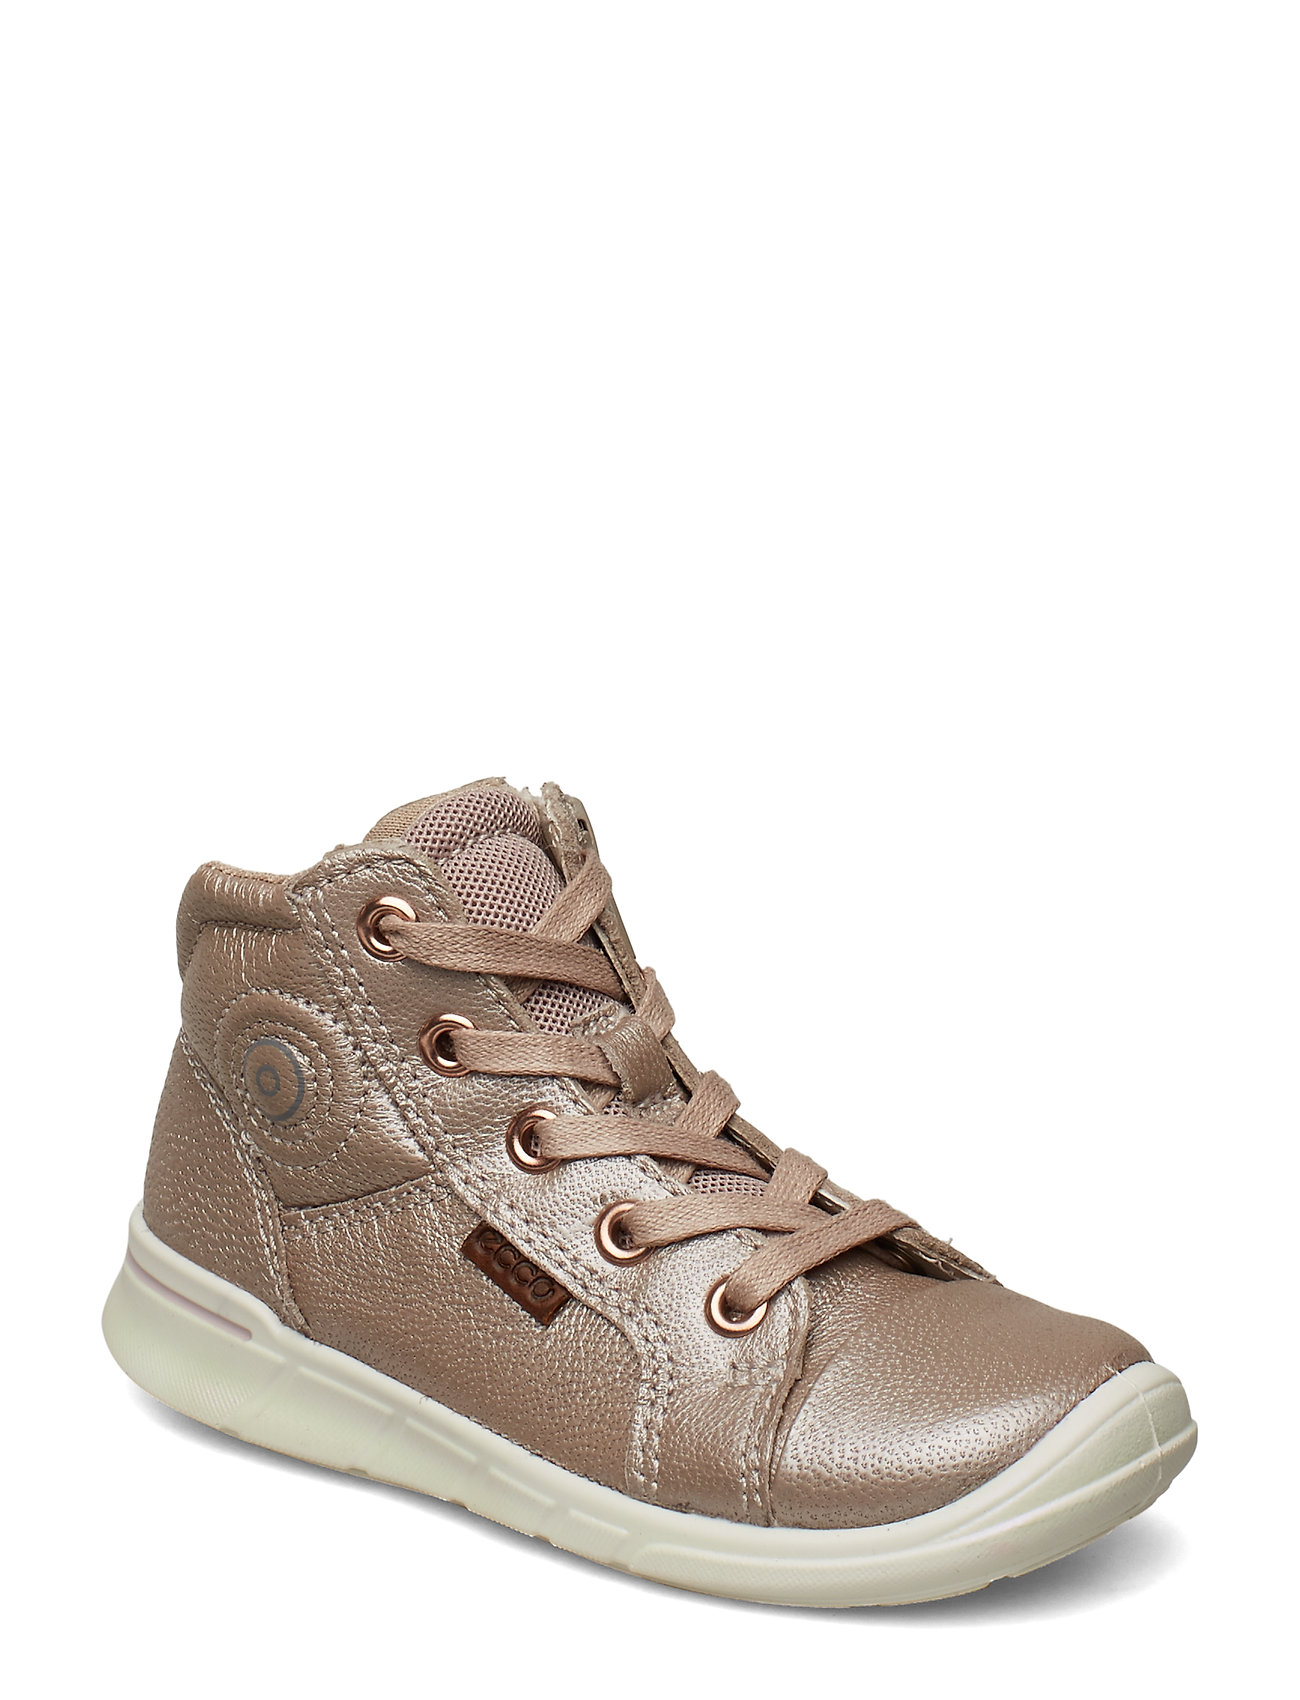 ECCO FIRST - GREY ROSE